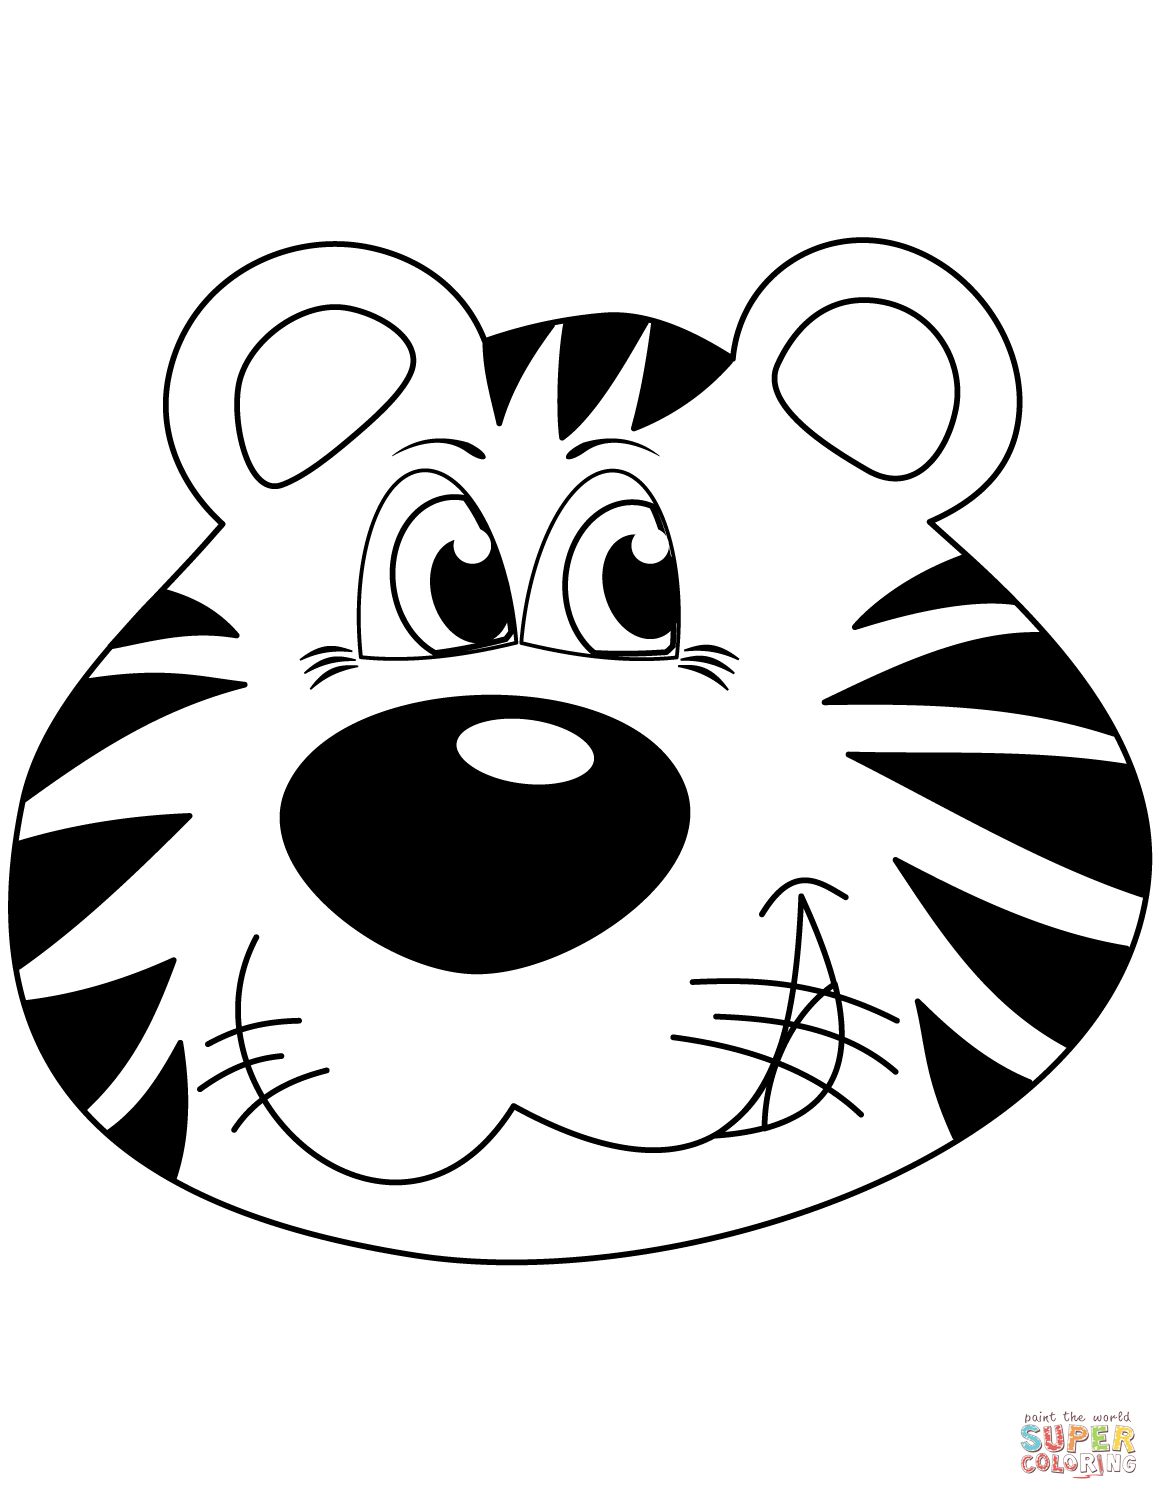 cute tiger face coloring pages cartoon tiger head coloring page free printable coloring tiger face pages cute coloring